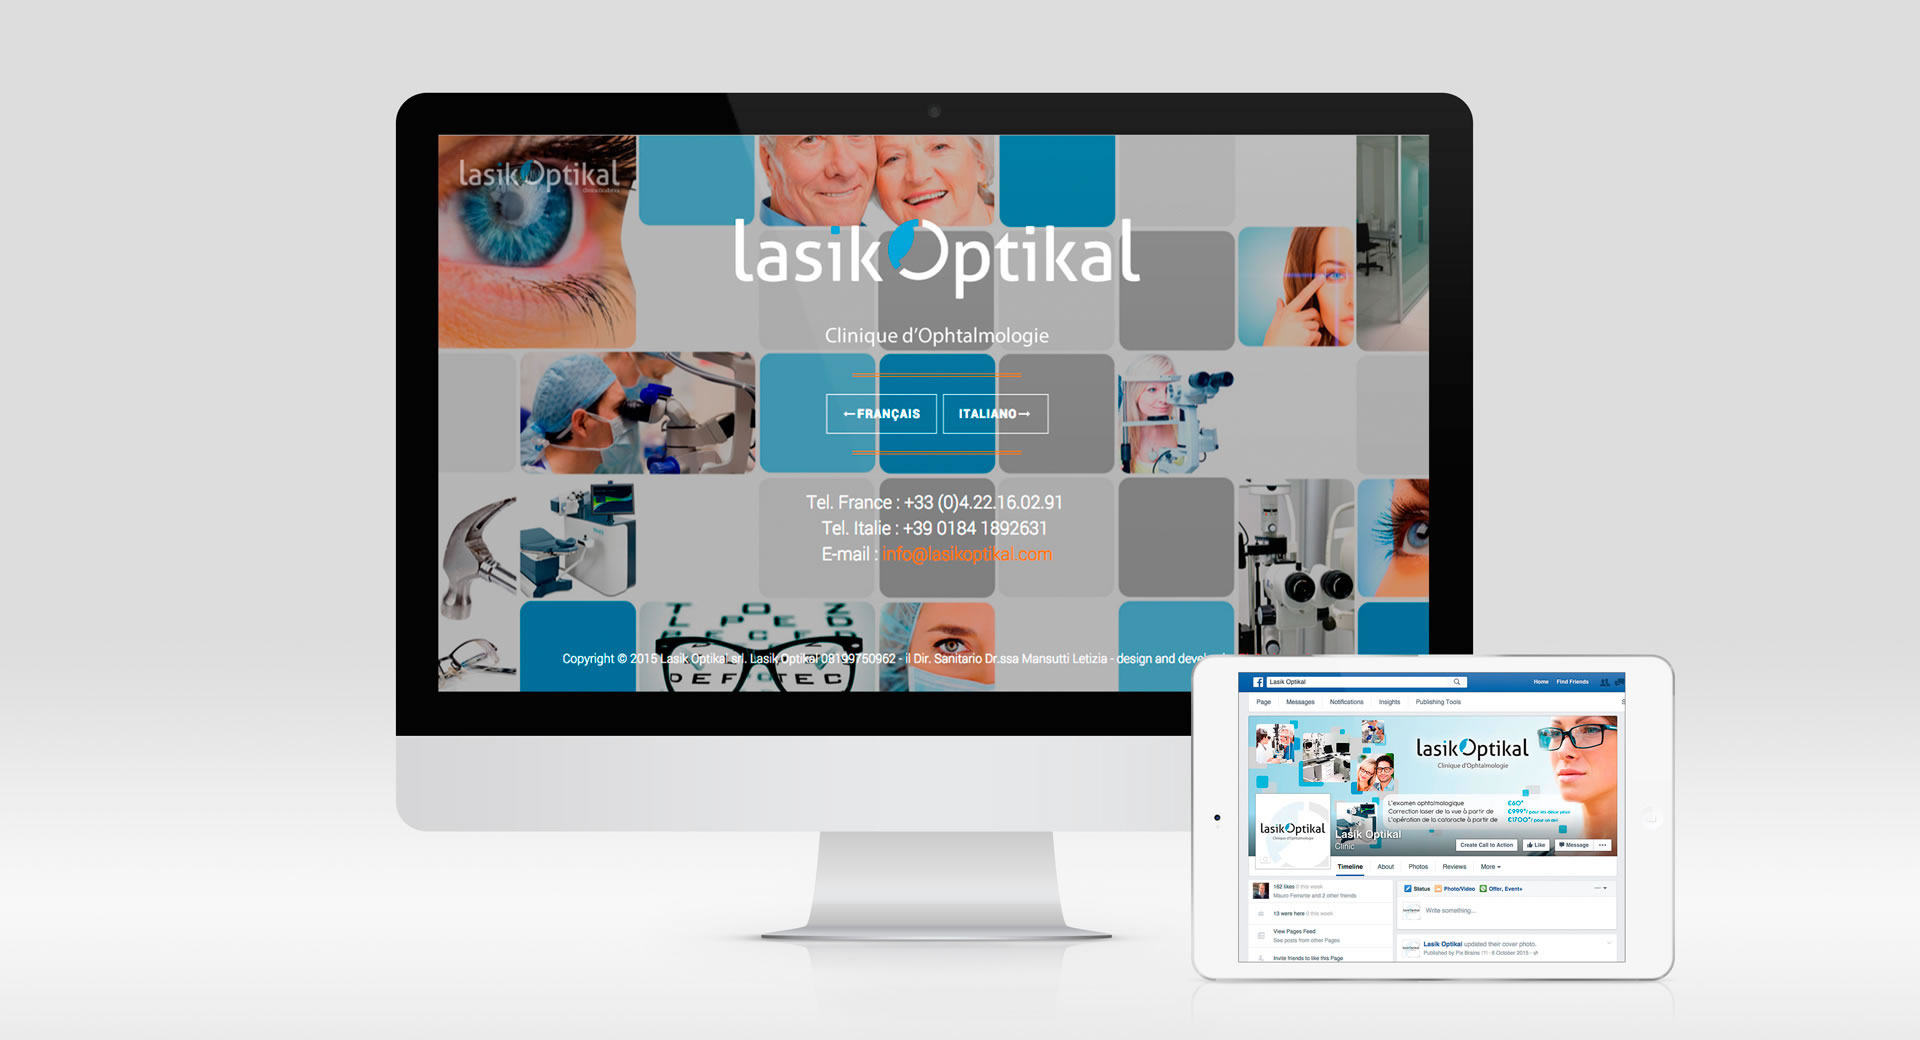 rjr design studio clinic ophthalmologist web designer london